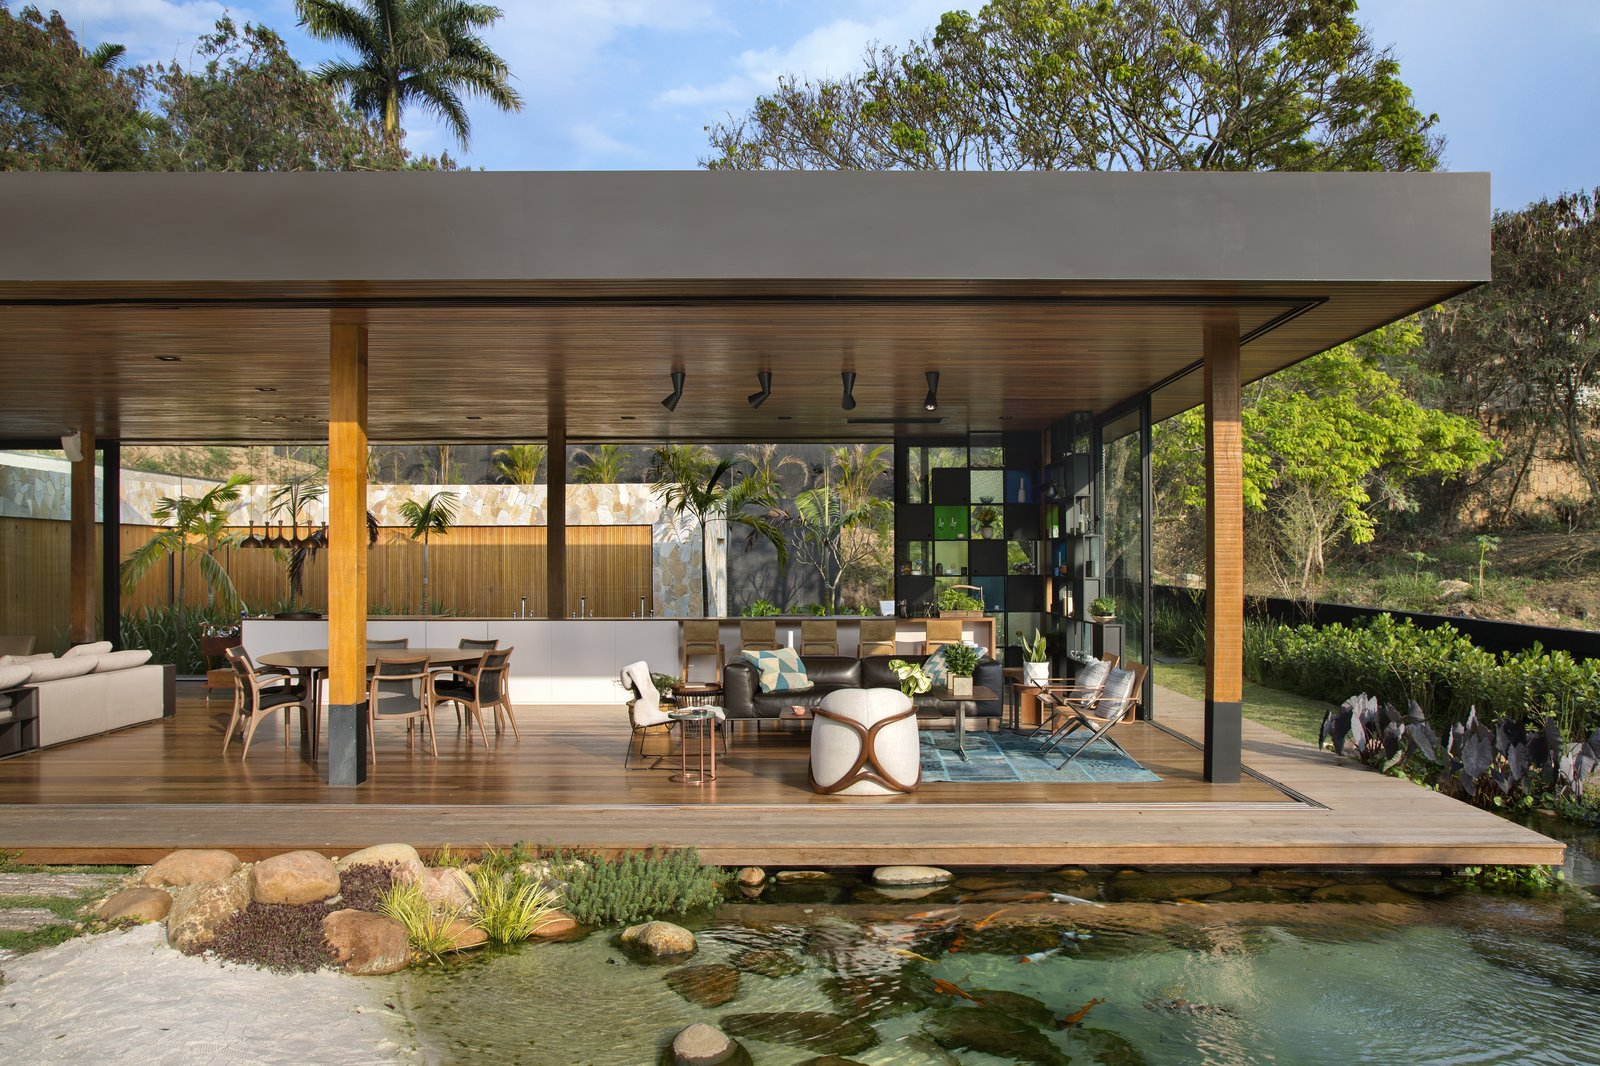 This Breezy Brazilian Home Oozes Tropical Vibes - Dwell